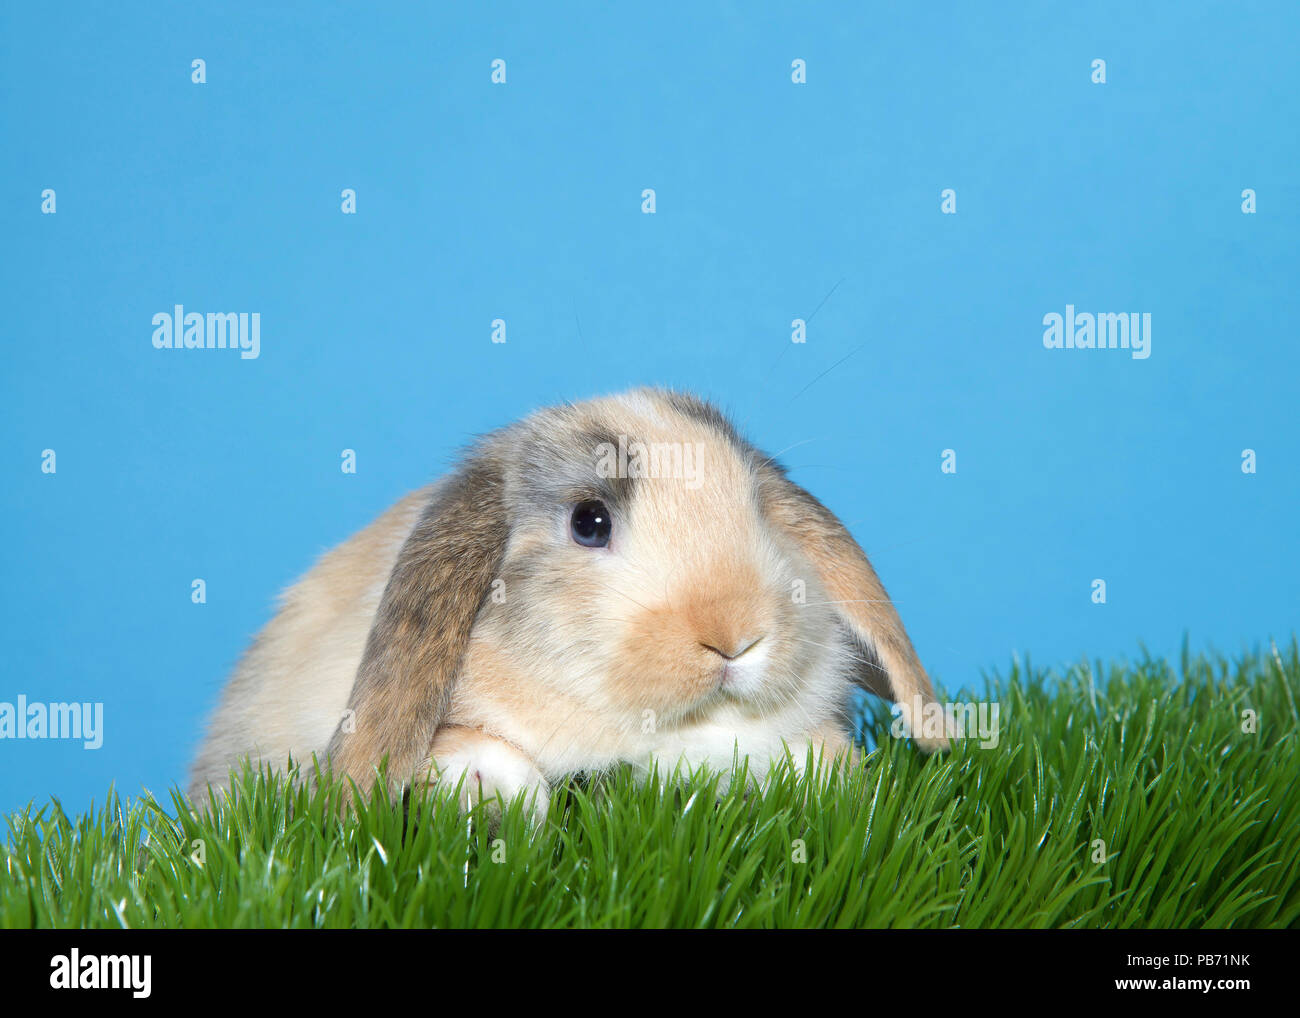 Close up portrait of a diluted calico colored lop eared bunny rabbit